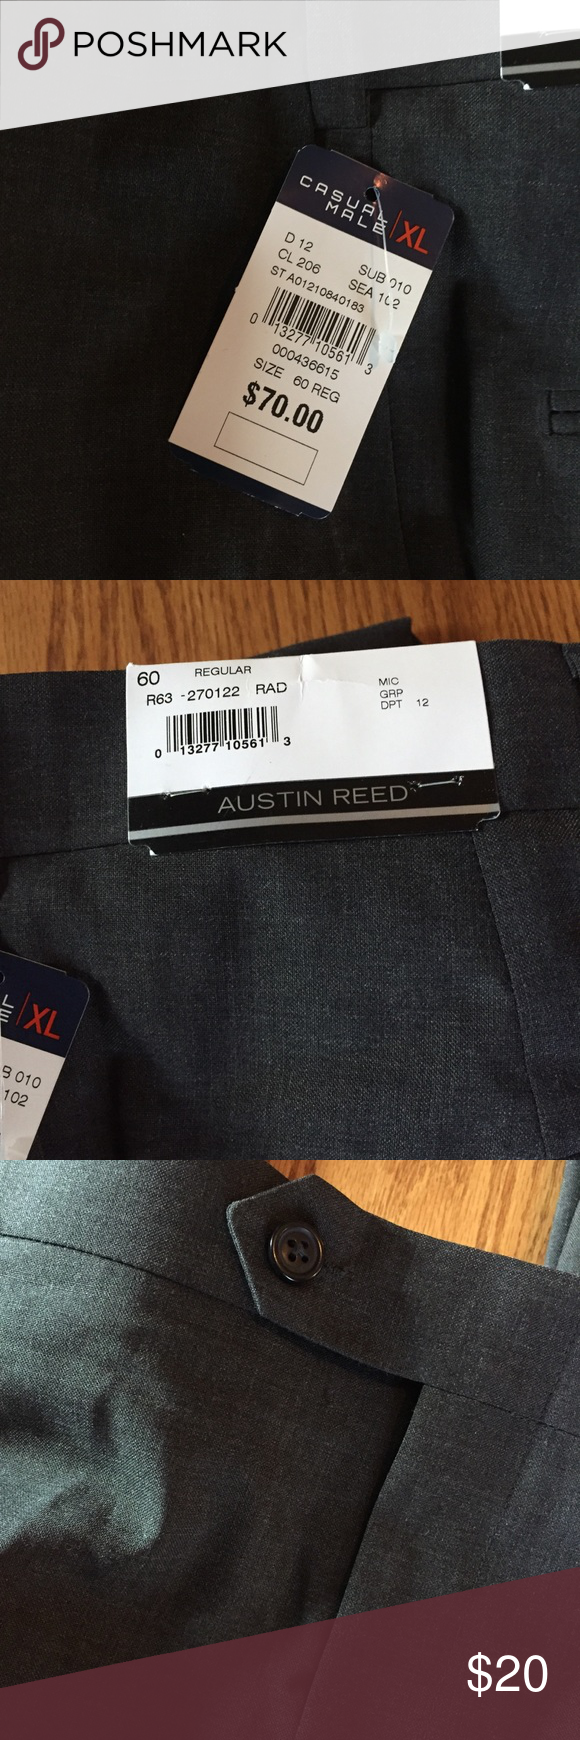 Austin Reed Nwt Men S Plus Size 60 X 28 Pants Austin Reed Austin Men